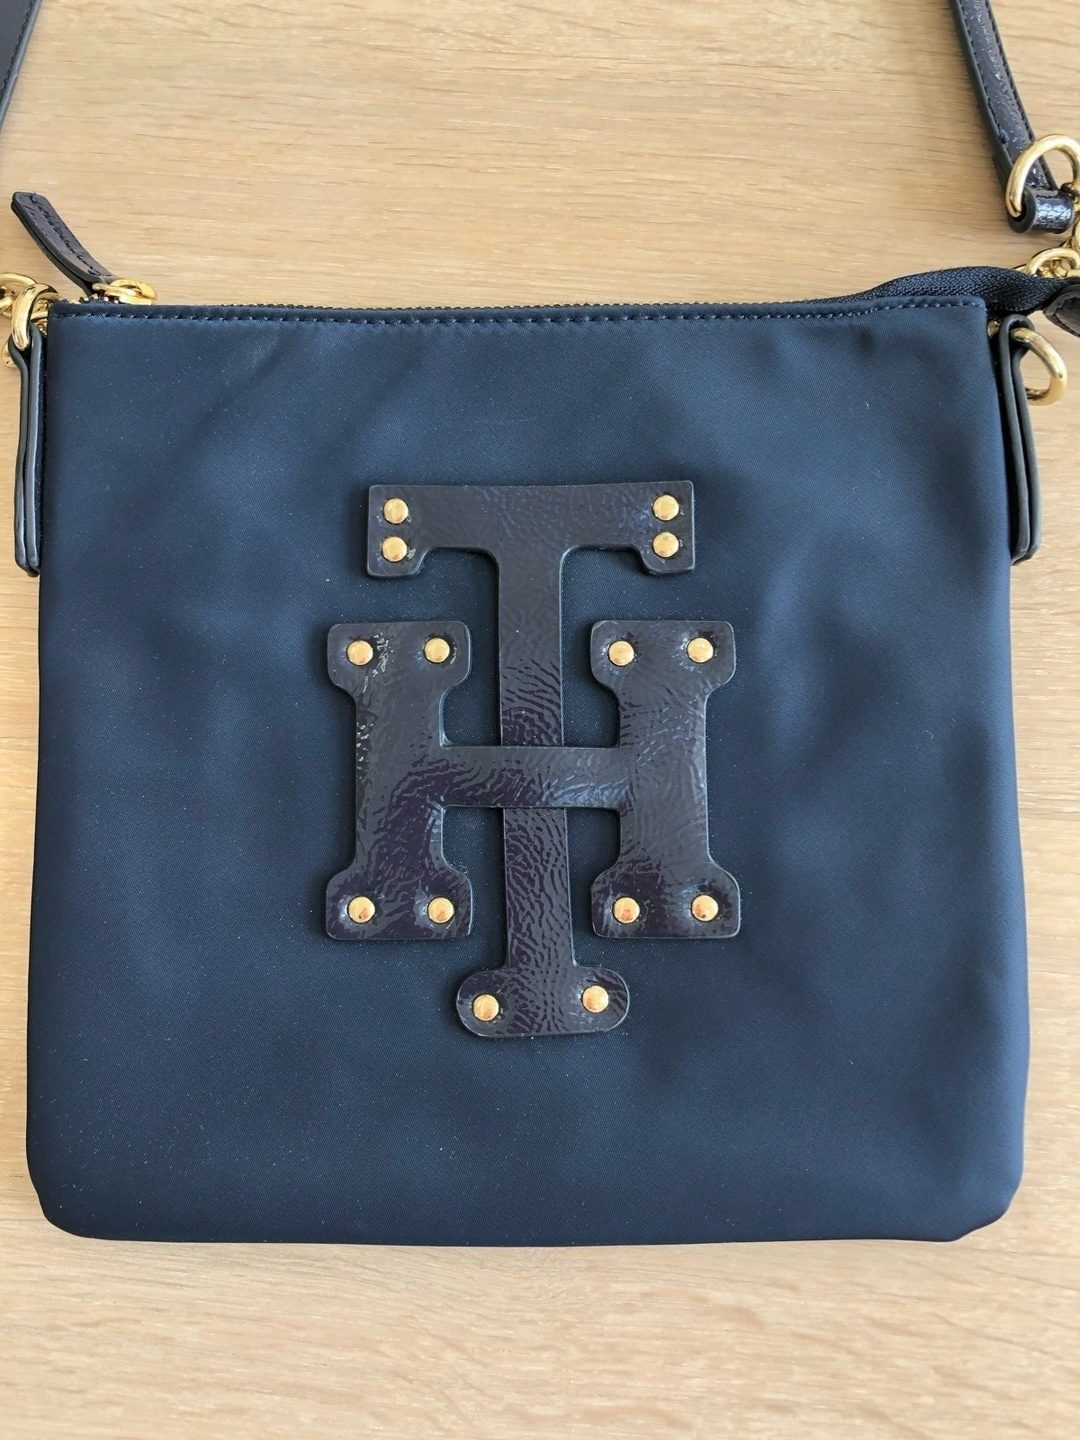 Women's bags & purses - TOMMY HILFIGER photo 3